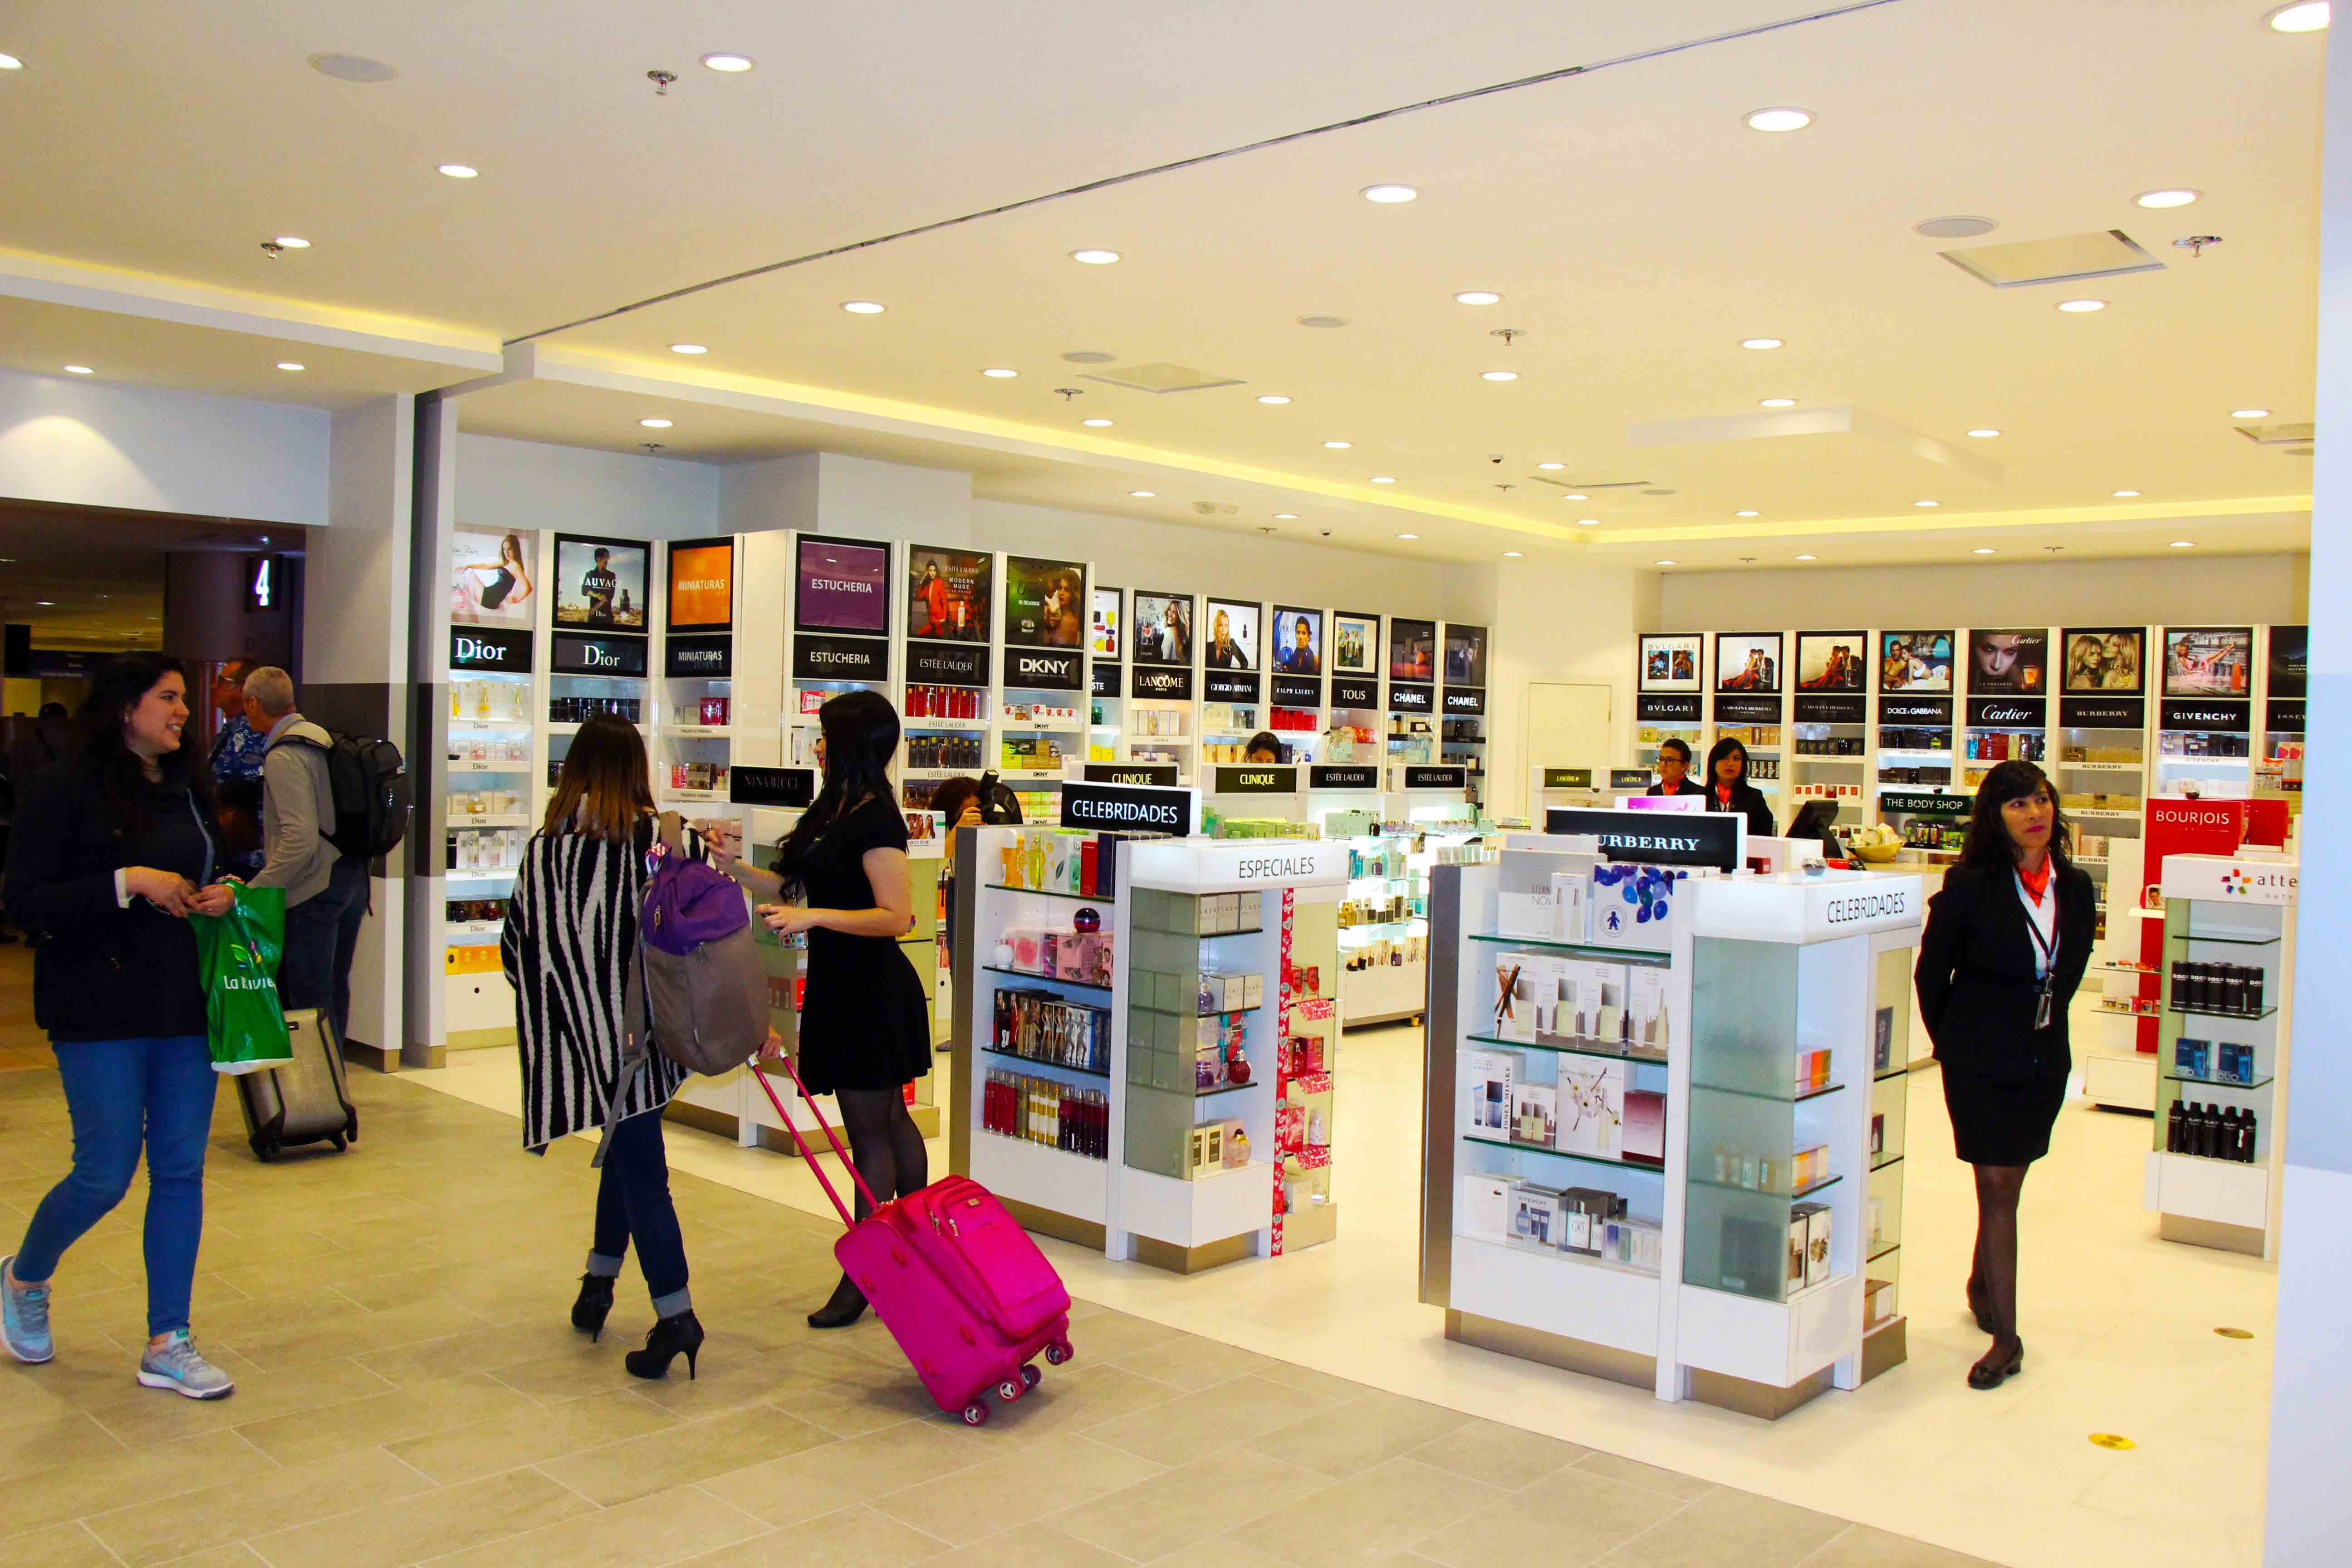 The renovated Attenza Duty Free Shop in international arrivals offers a better experience for passengers